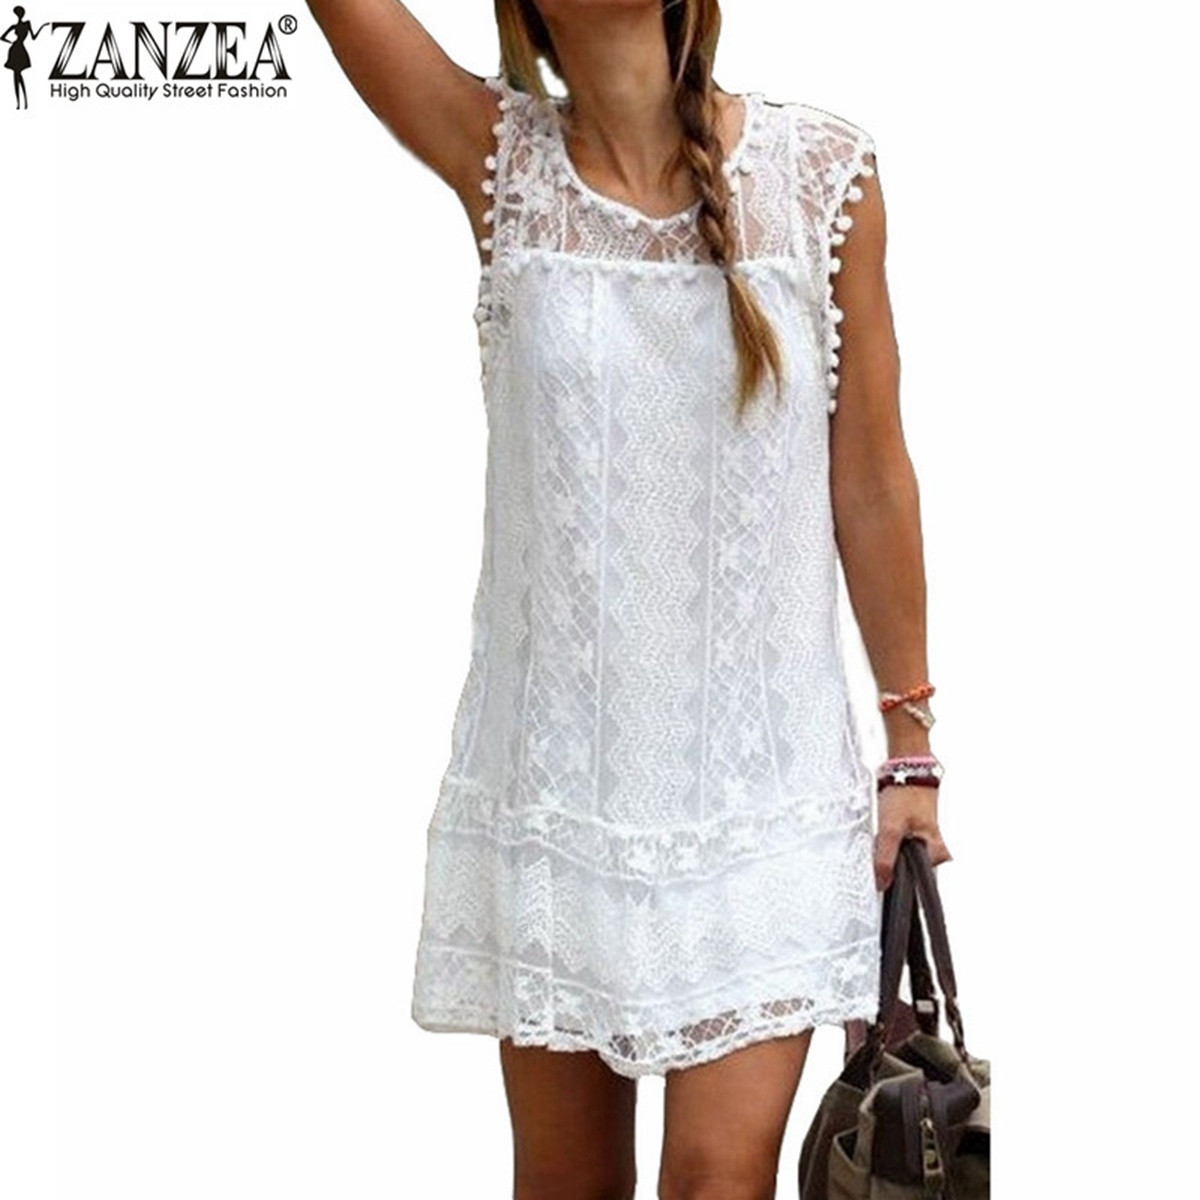 ZANZEA Vestidos 2018 Sommer Elegant Kvinder Casual Solid Short Sleeve Slim Lace Mini Kjole Toppe Ladies Sexy White Dress Plus Størrelse